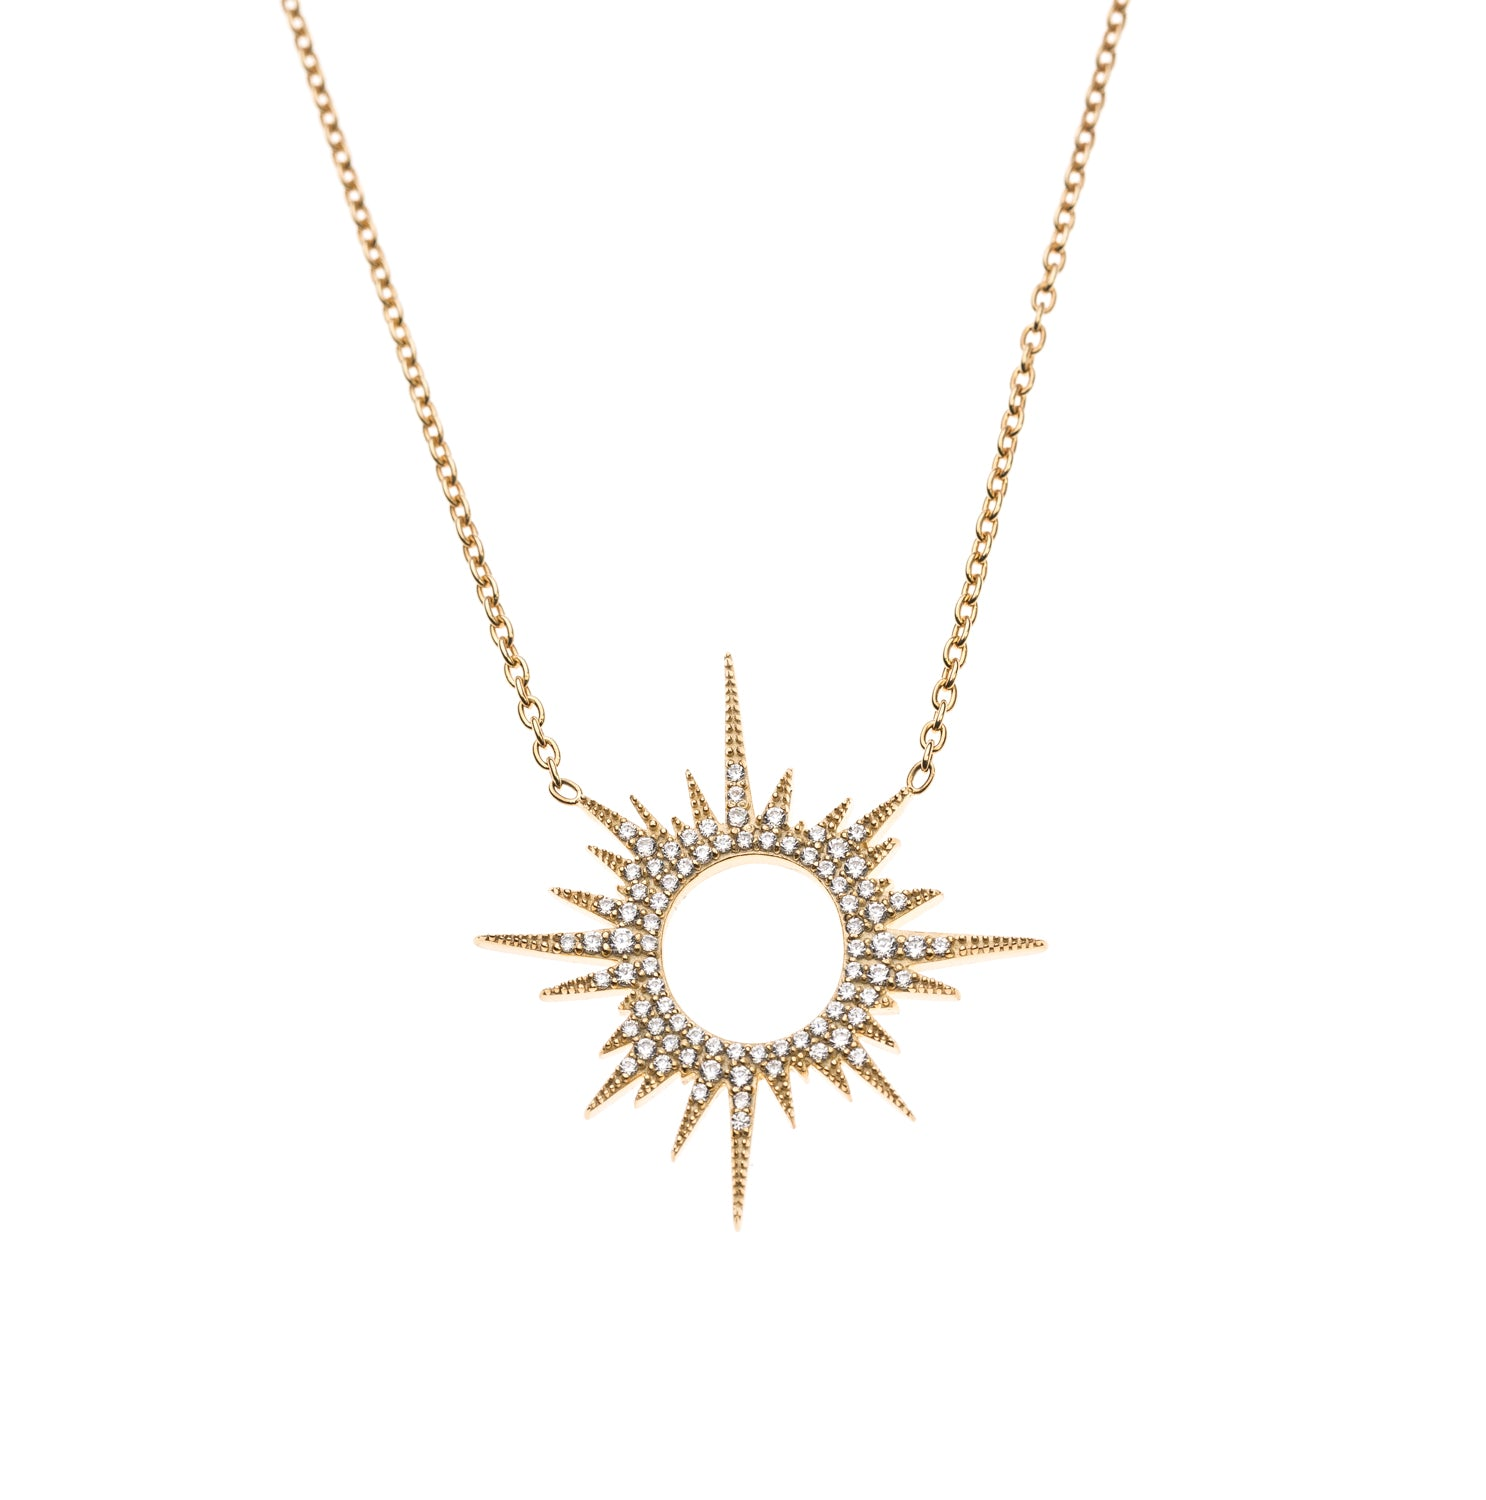 kurafuchi sunburst img necklace gold products